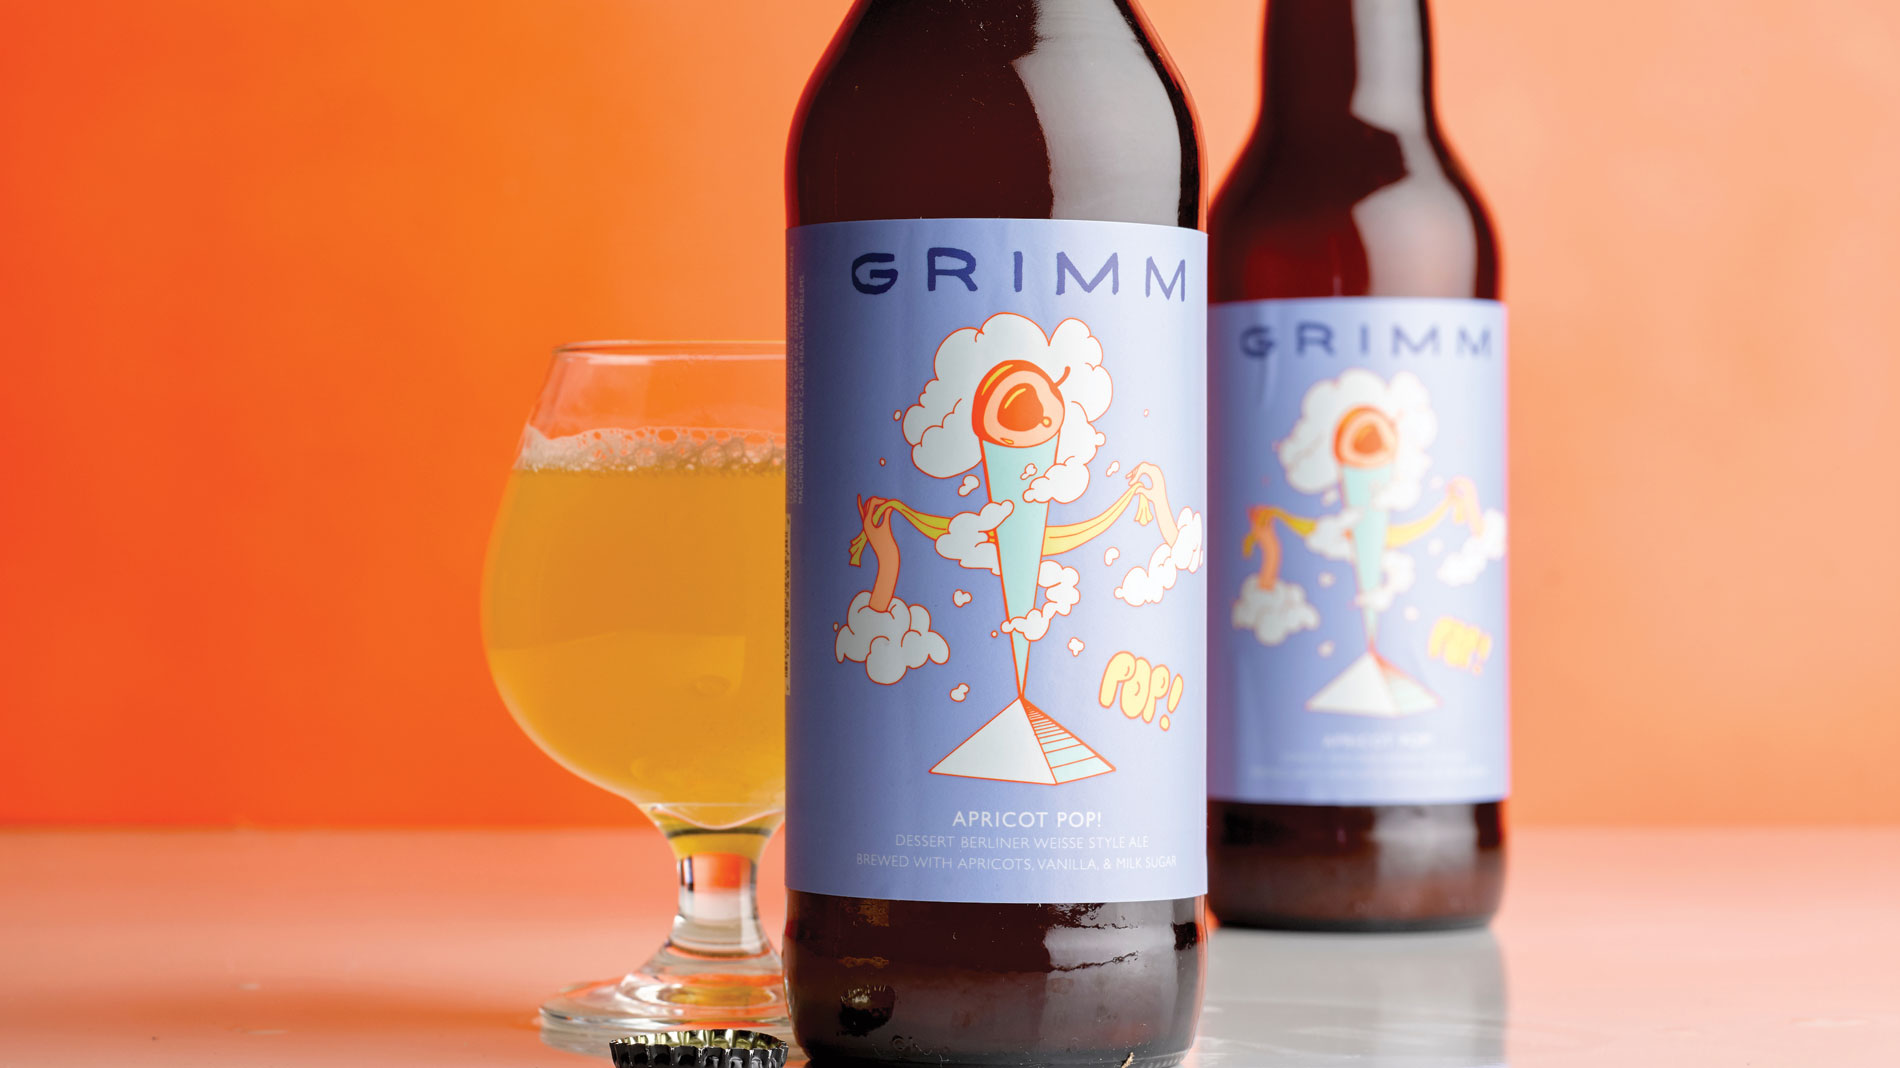 two bottles and a glass of grimm artisanal ales apricot pop beer